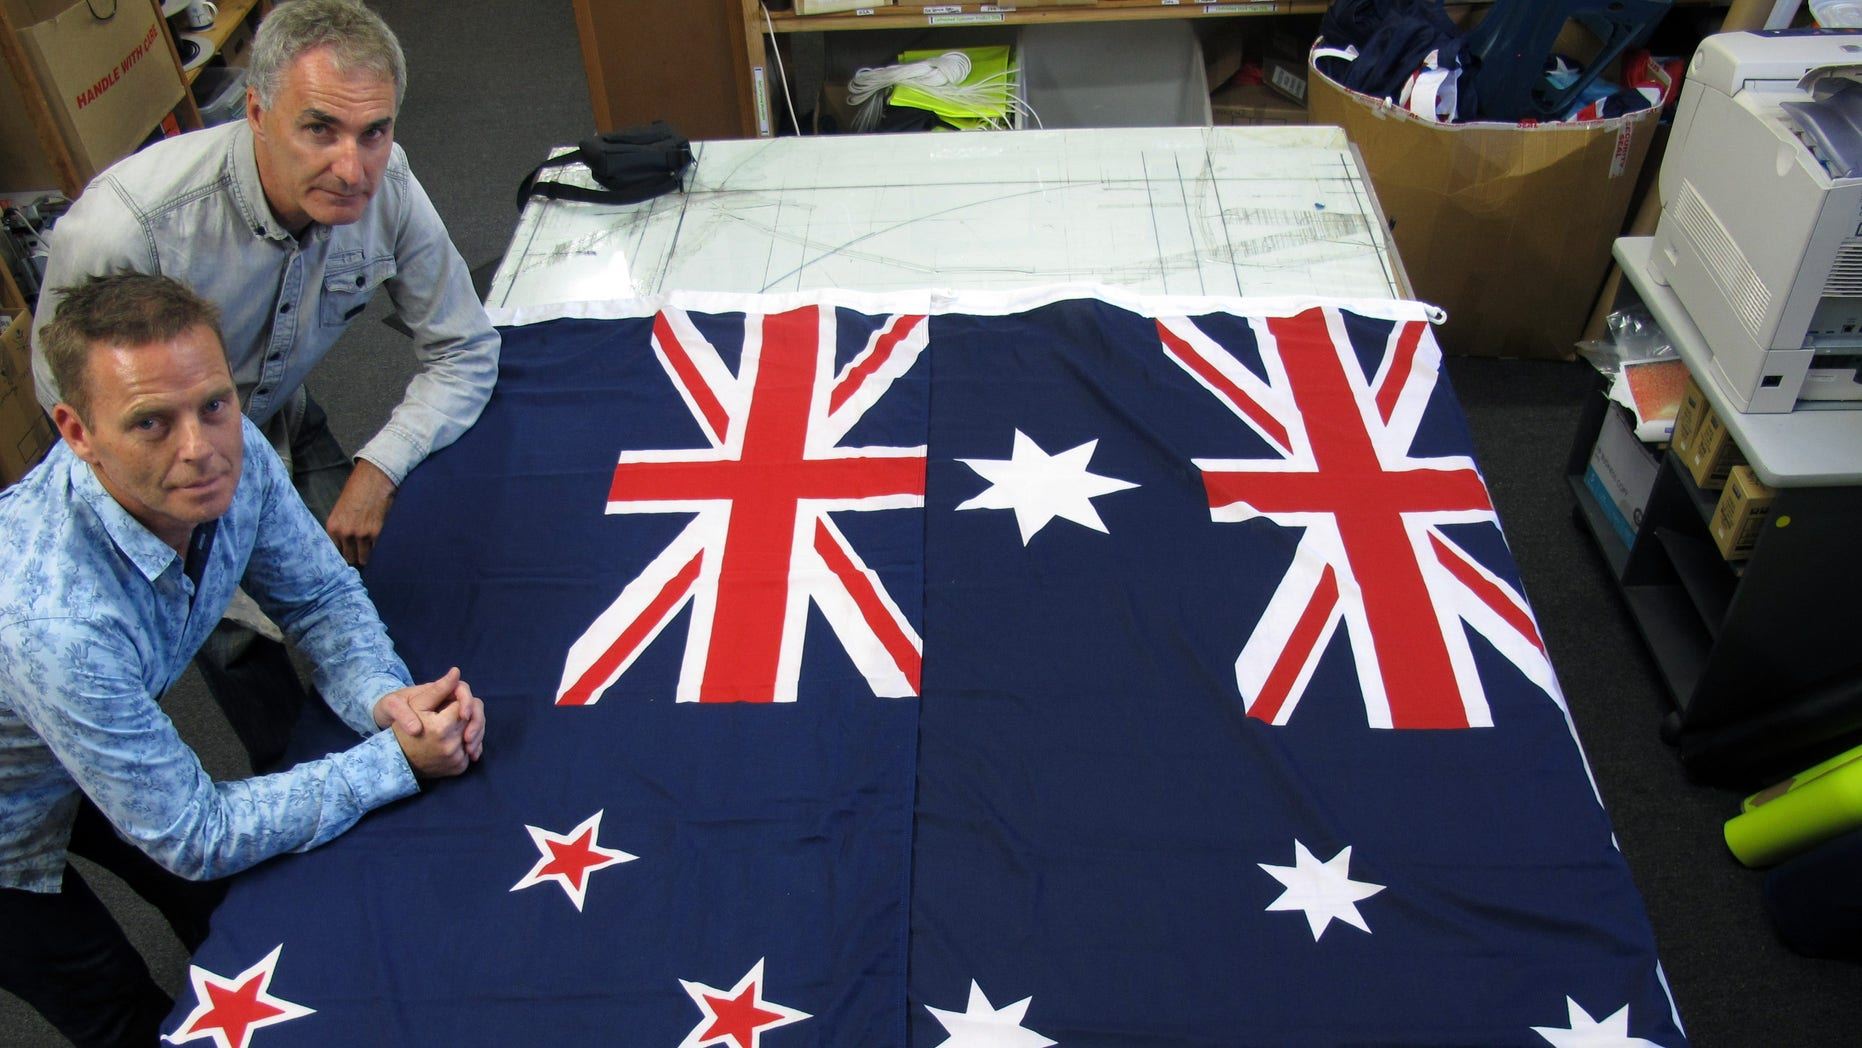 March 3, 2014 - FILE photo of Victor Gizzi, left, and David Moginie, managers at flag manufacturer Flagmakers, next to flags of New Zealand, left, and Australia, in their factory near Wellington, New Zealand. Fresh off a big election win, New Zealand Prime Minster John Key says he wants the nation to vote next year on changing its flag.